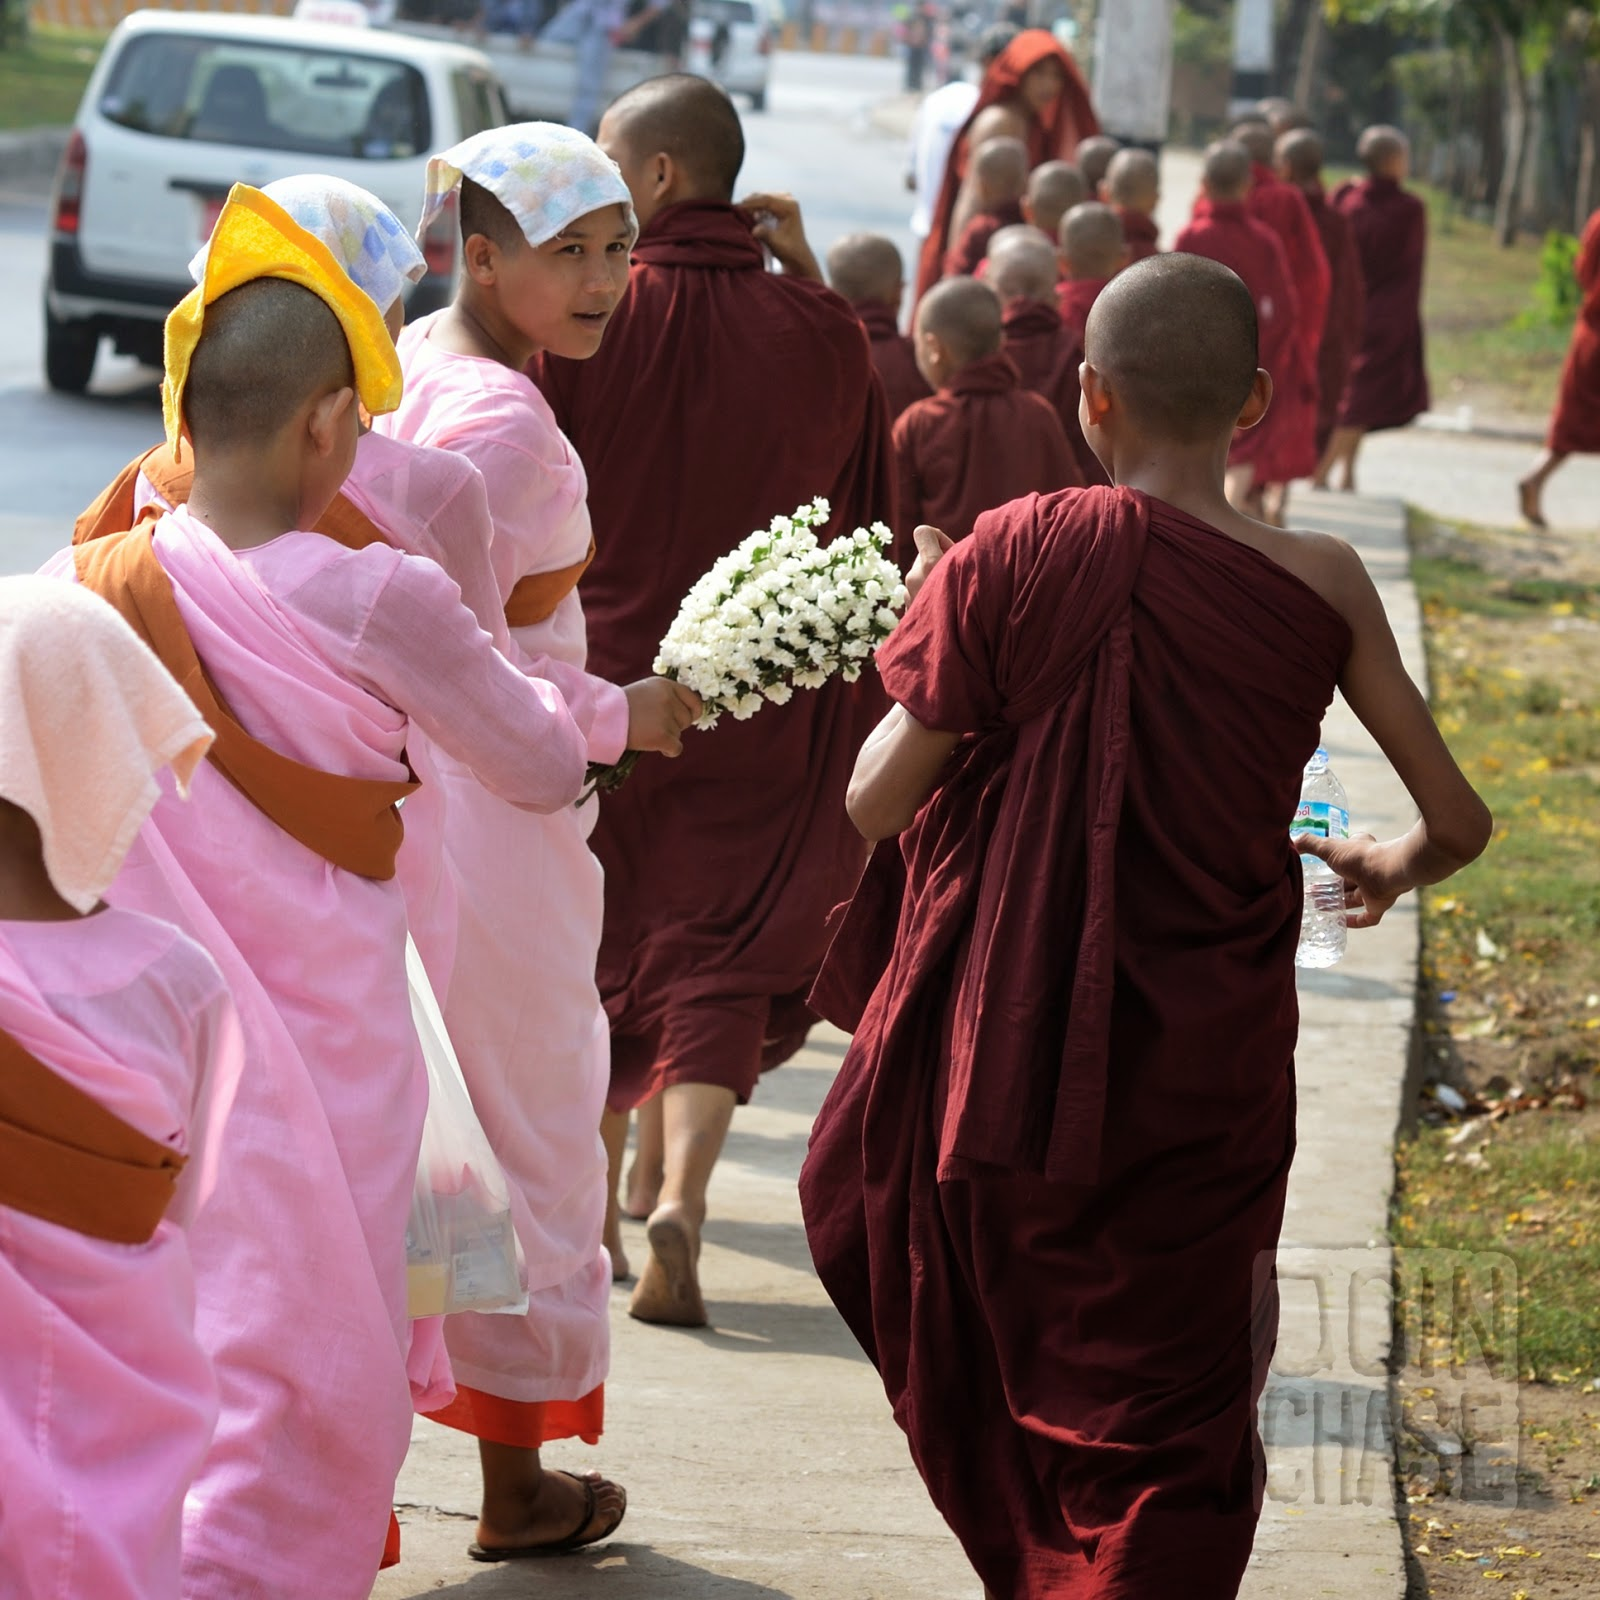 Monks and nuns walking together in Yangon, Myanmar.